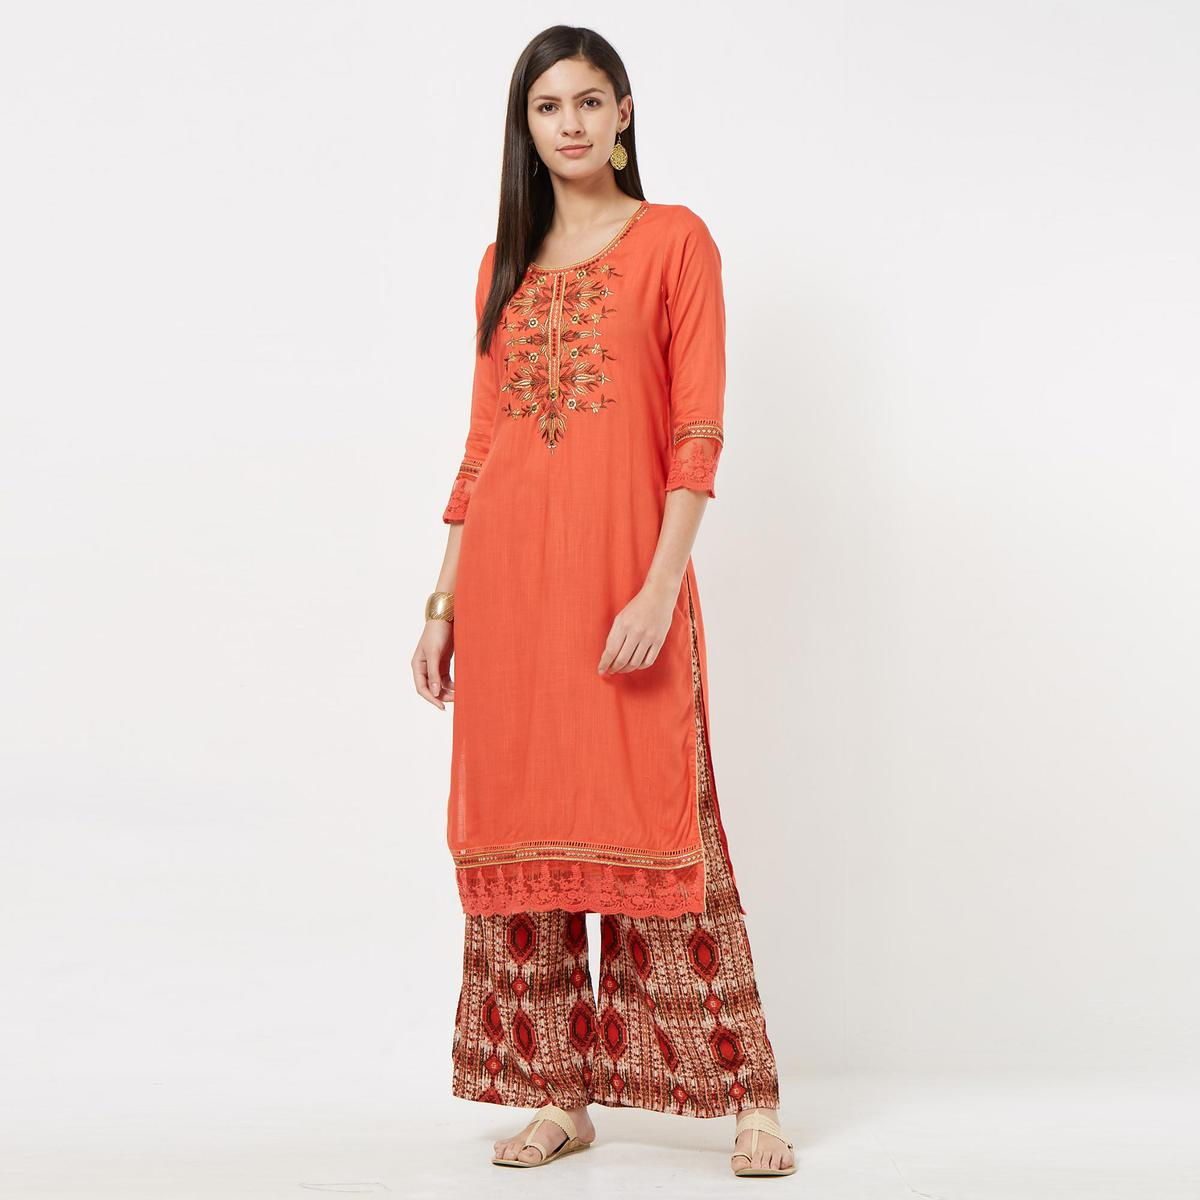 Hypnotic Gajri Colored Partywear Embroidered Cotton Palazzo Suit